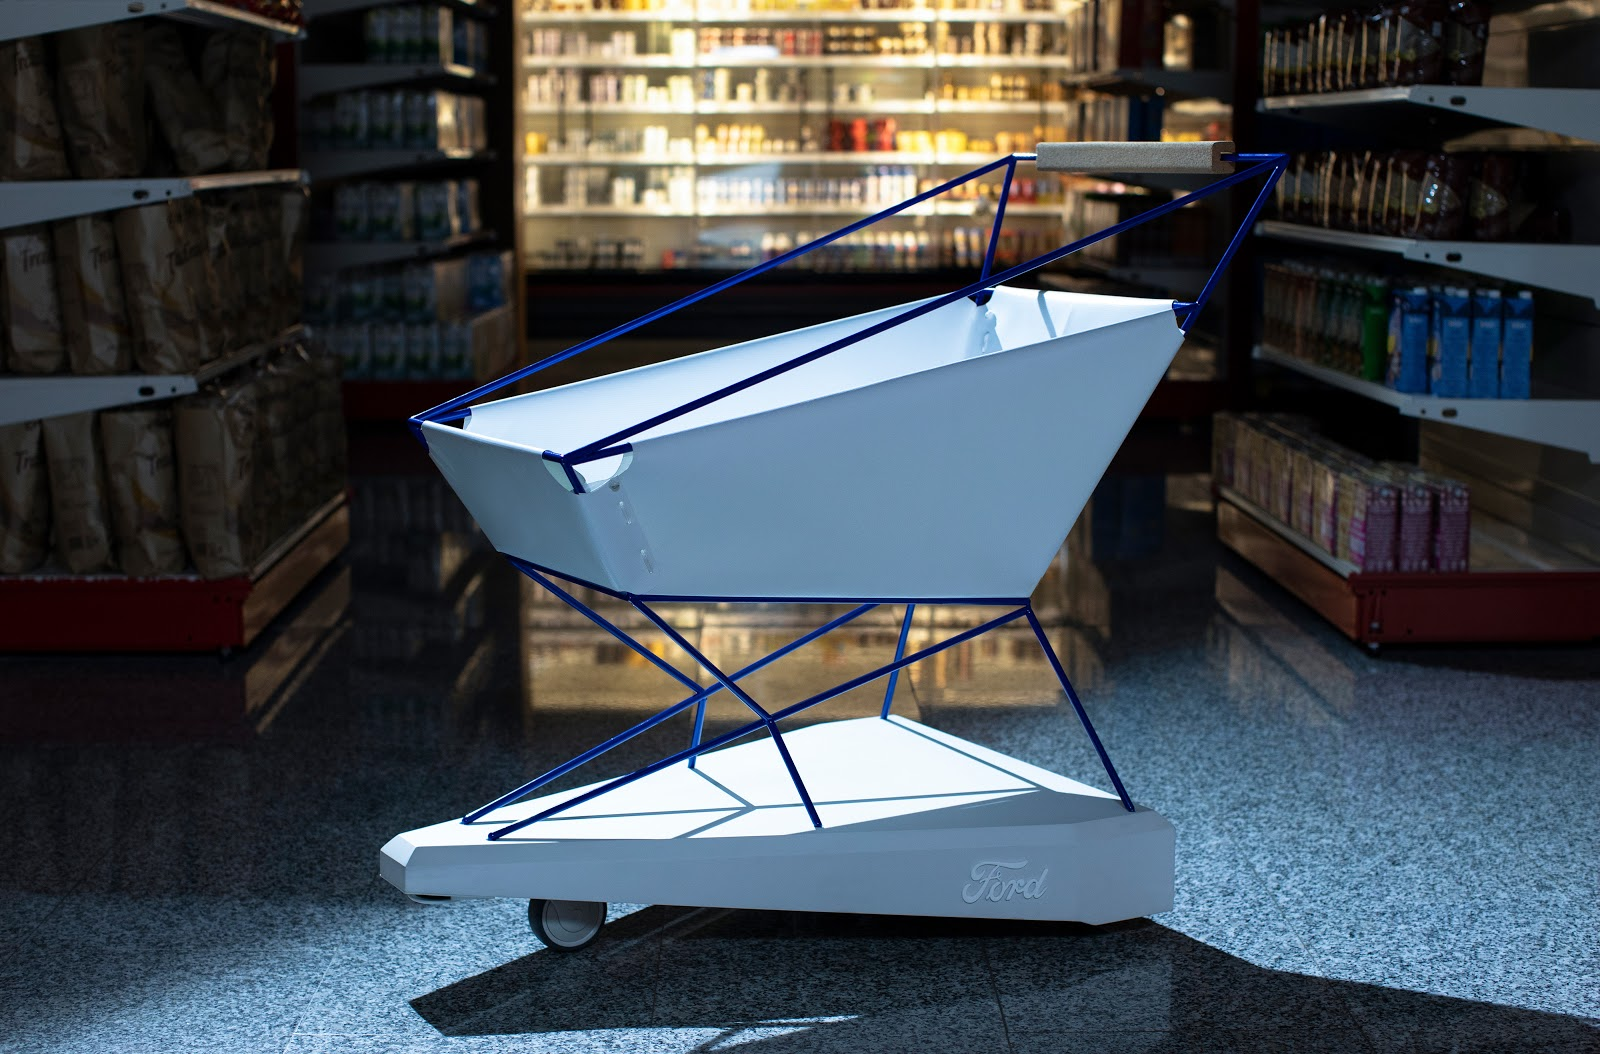 Ford smart shopping cart